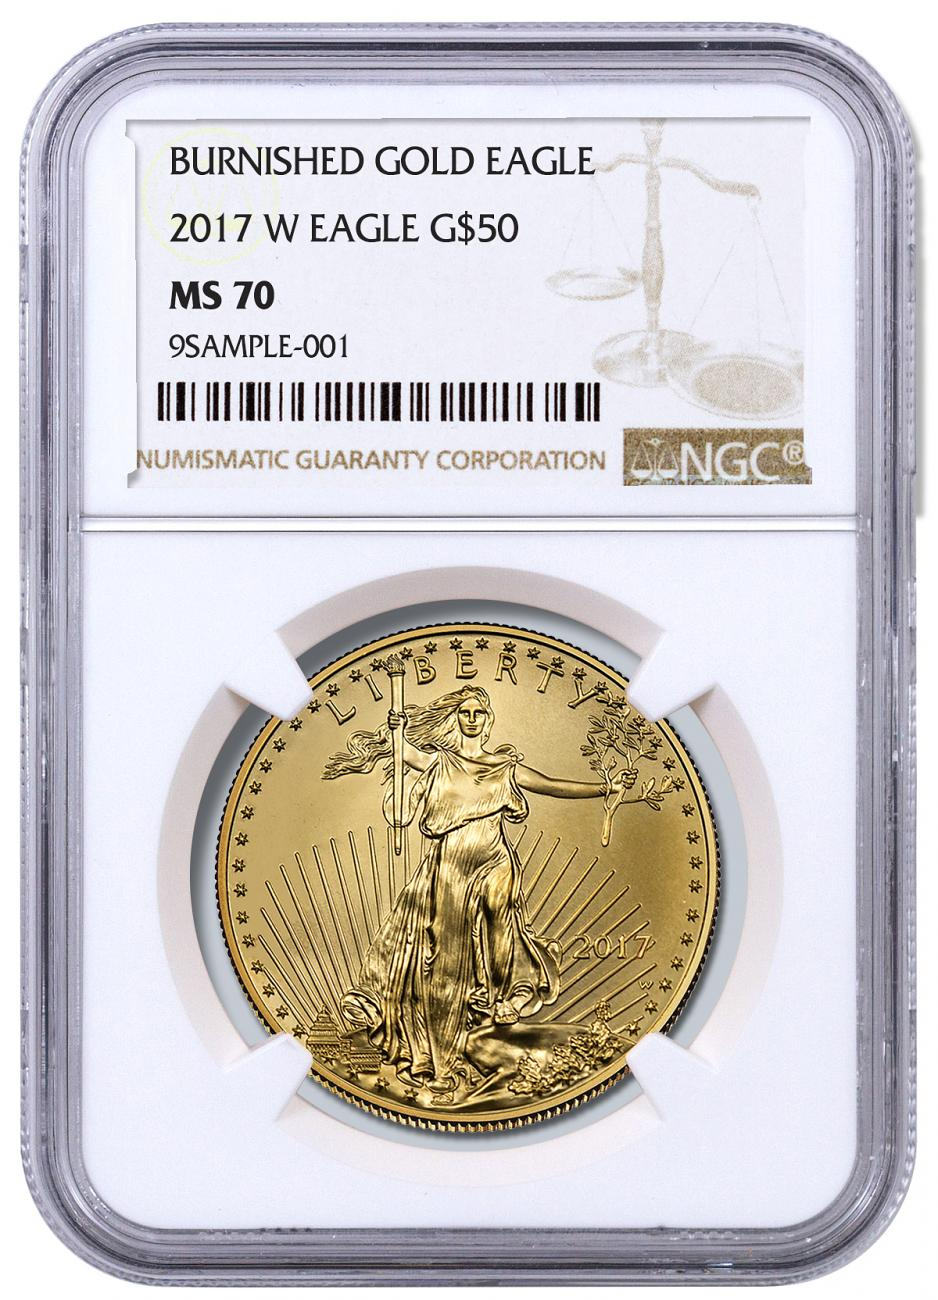 2017-W 1 oz Burnished Gold American Eagle $50 NGC MS70